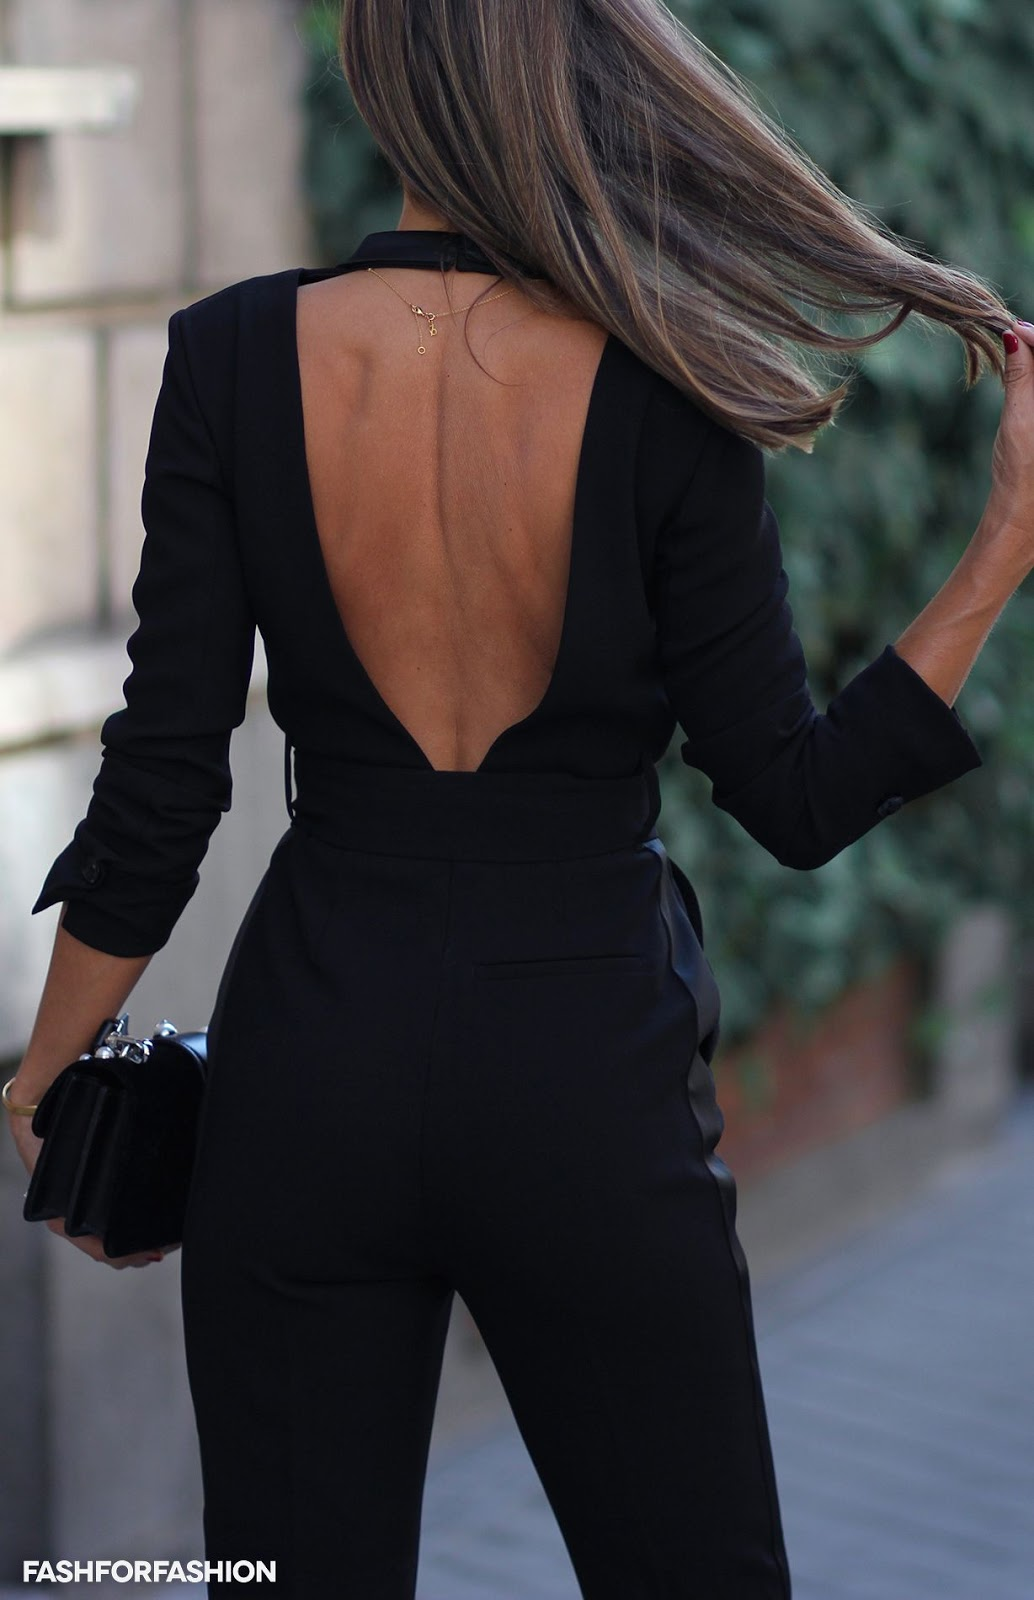 ♛ FASHION and STYLE INSPIRATIONS♛ - best outfit ideas